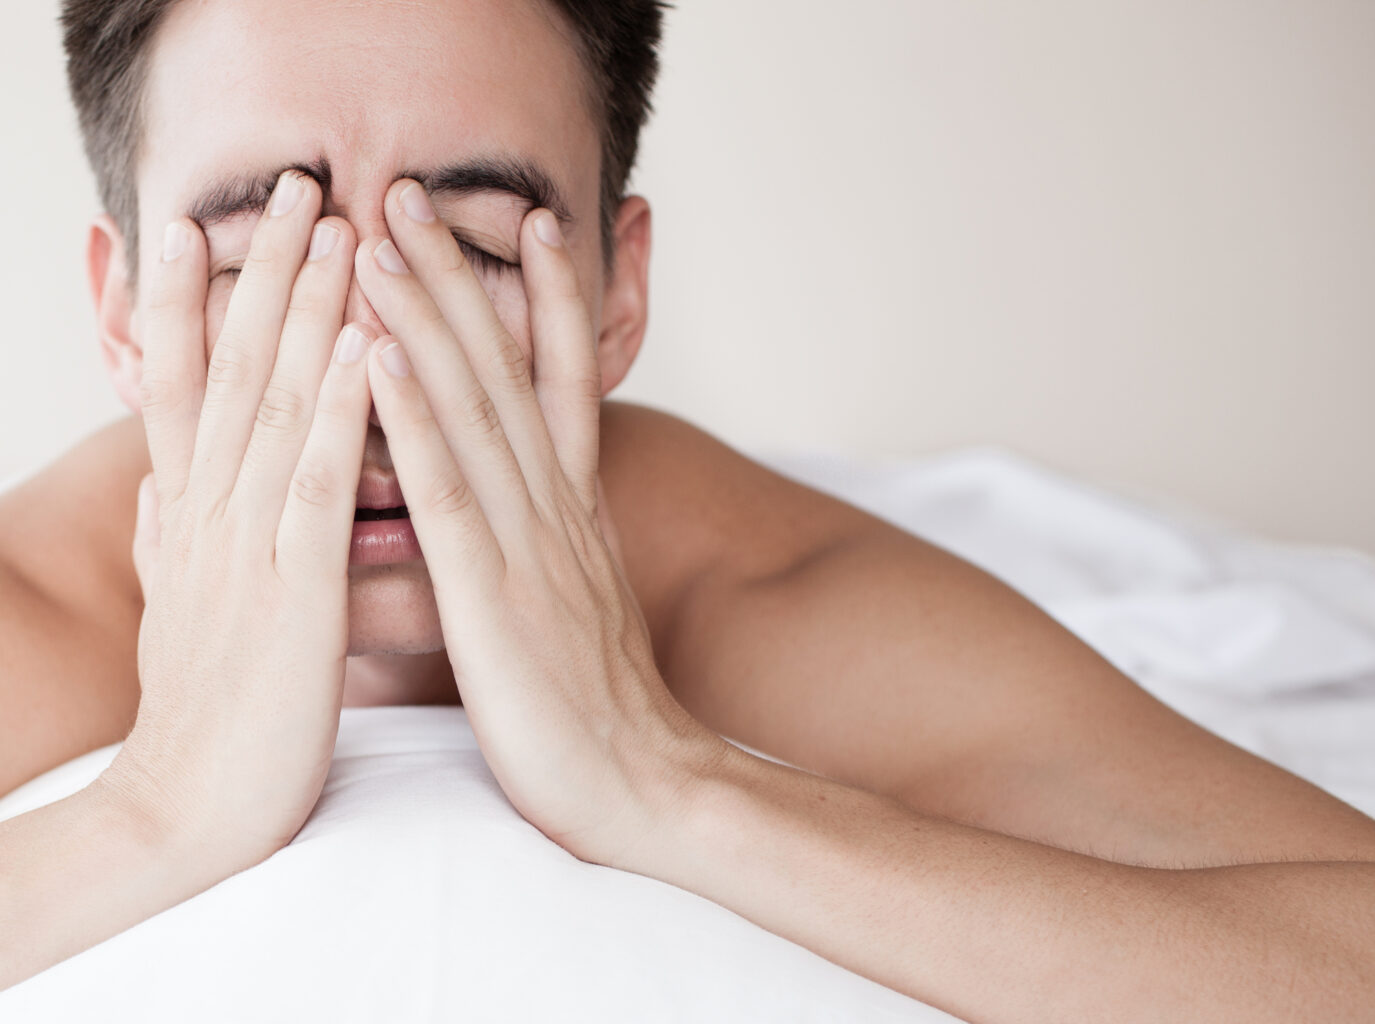 The Many Effects of Sleep Apnea